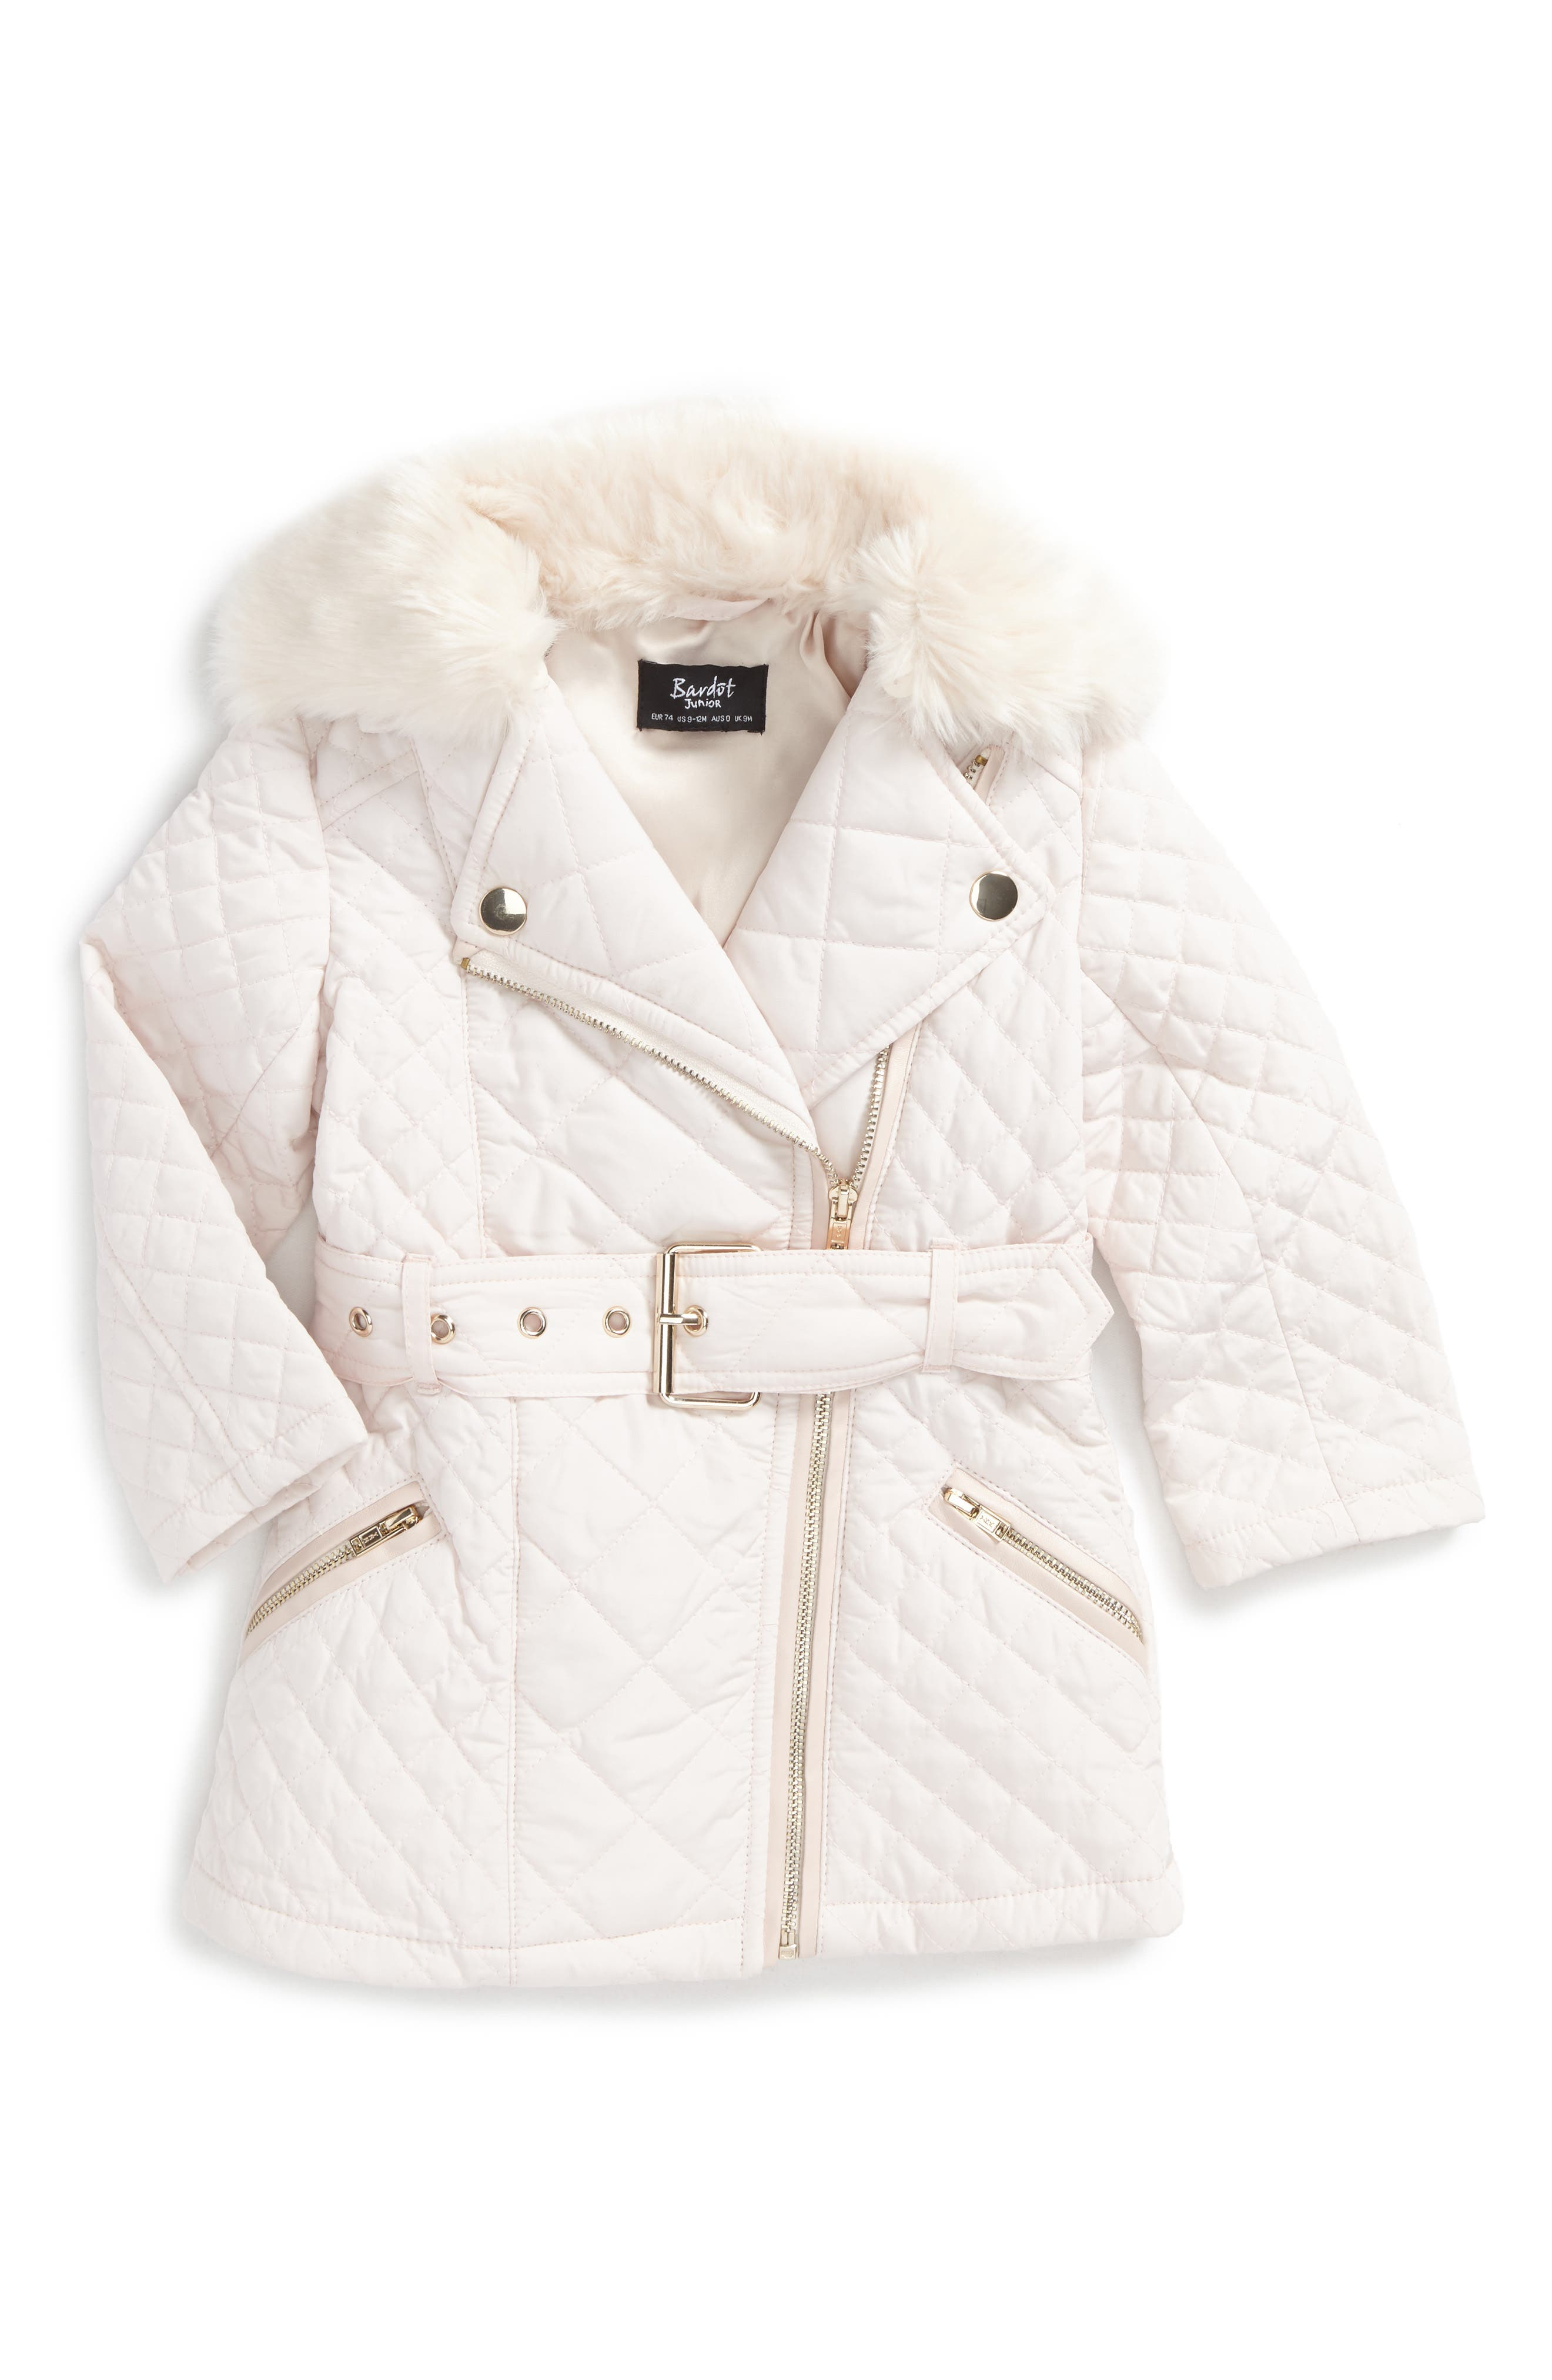 Main Image - Bardot Junior Quilted Jacket with Faux Fur Collar (Baby Girls & Toddler Girls)